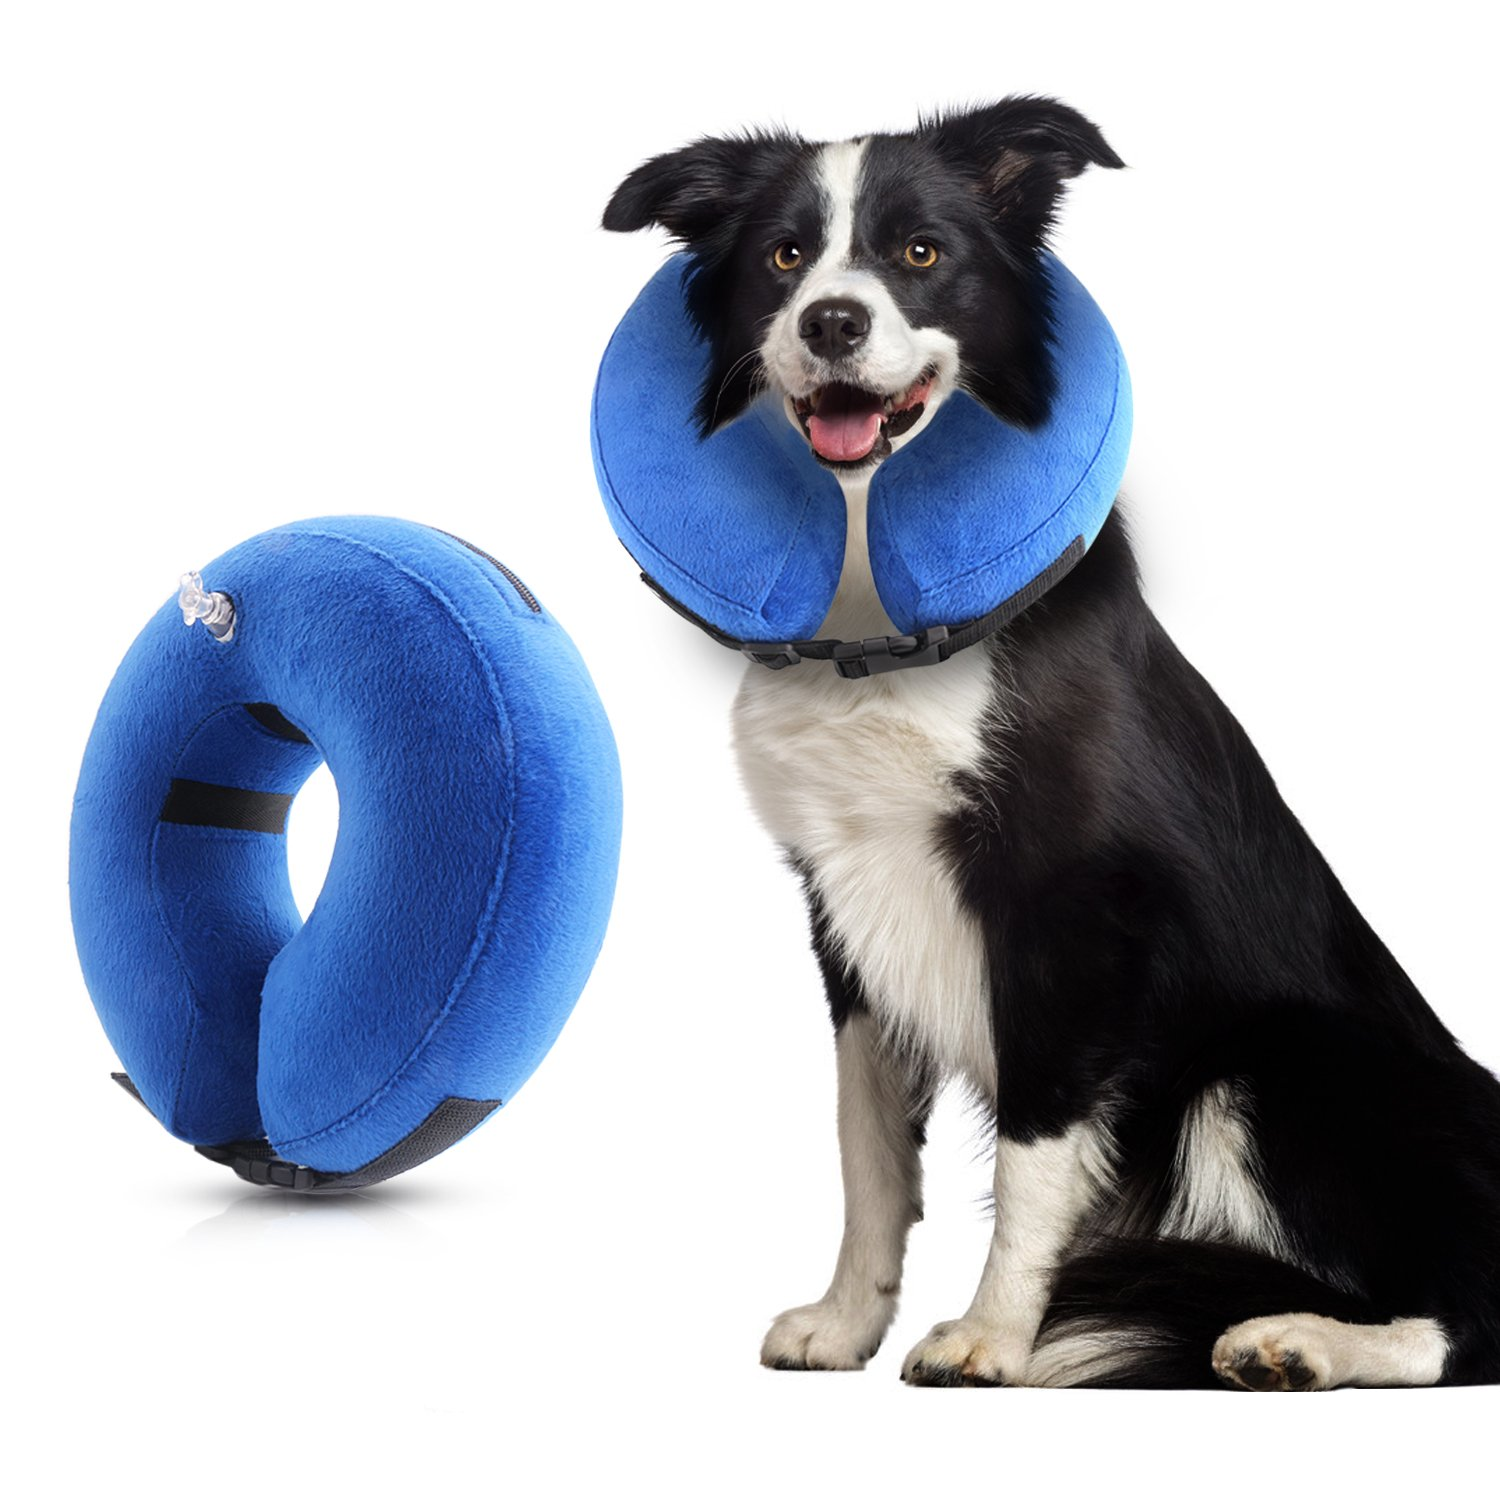 WIRSV Dog cone, Protective Inflatable Dogs Collar Soft and Convenient Pet Recovery E-Collar for Small Medium Large Dogs and Cats Designed to Prevent Pets From Touching Wound Does Not Block Vision (L)